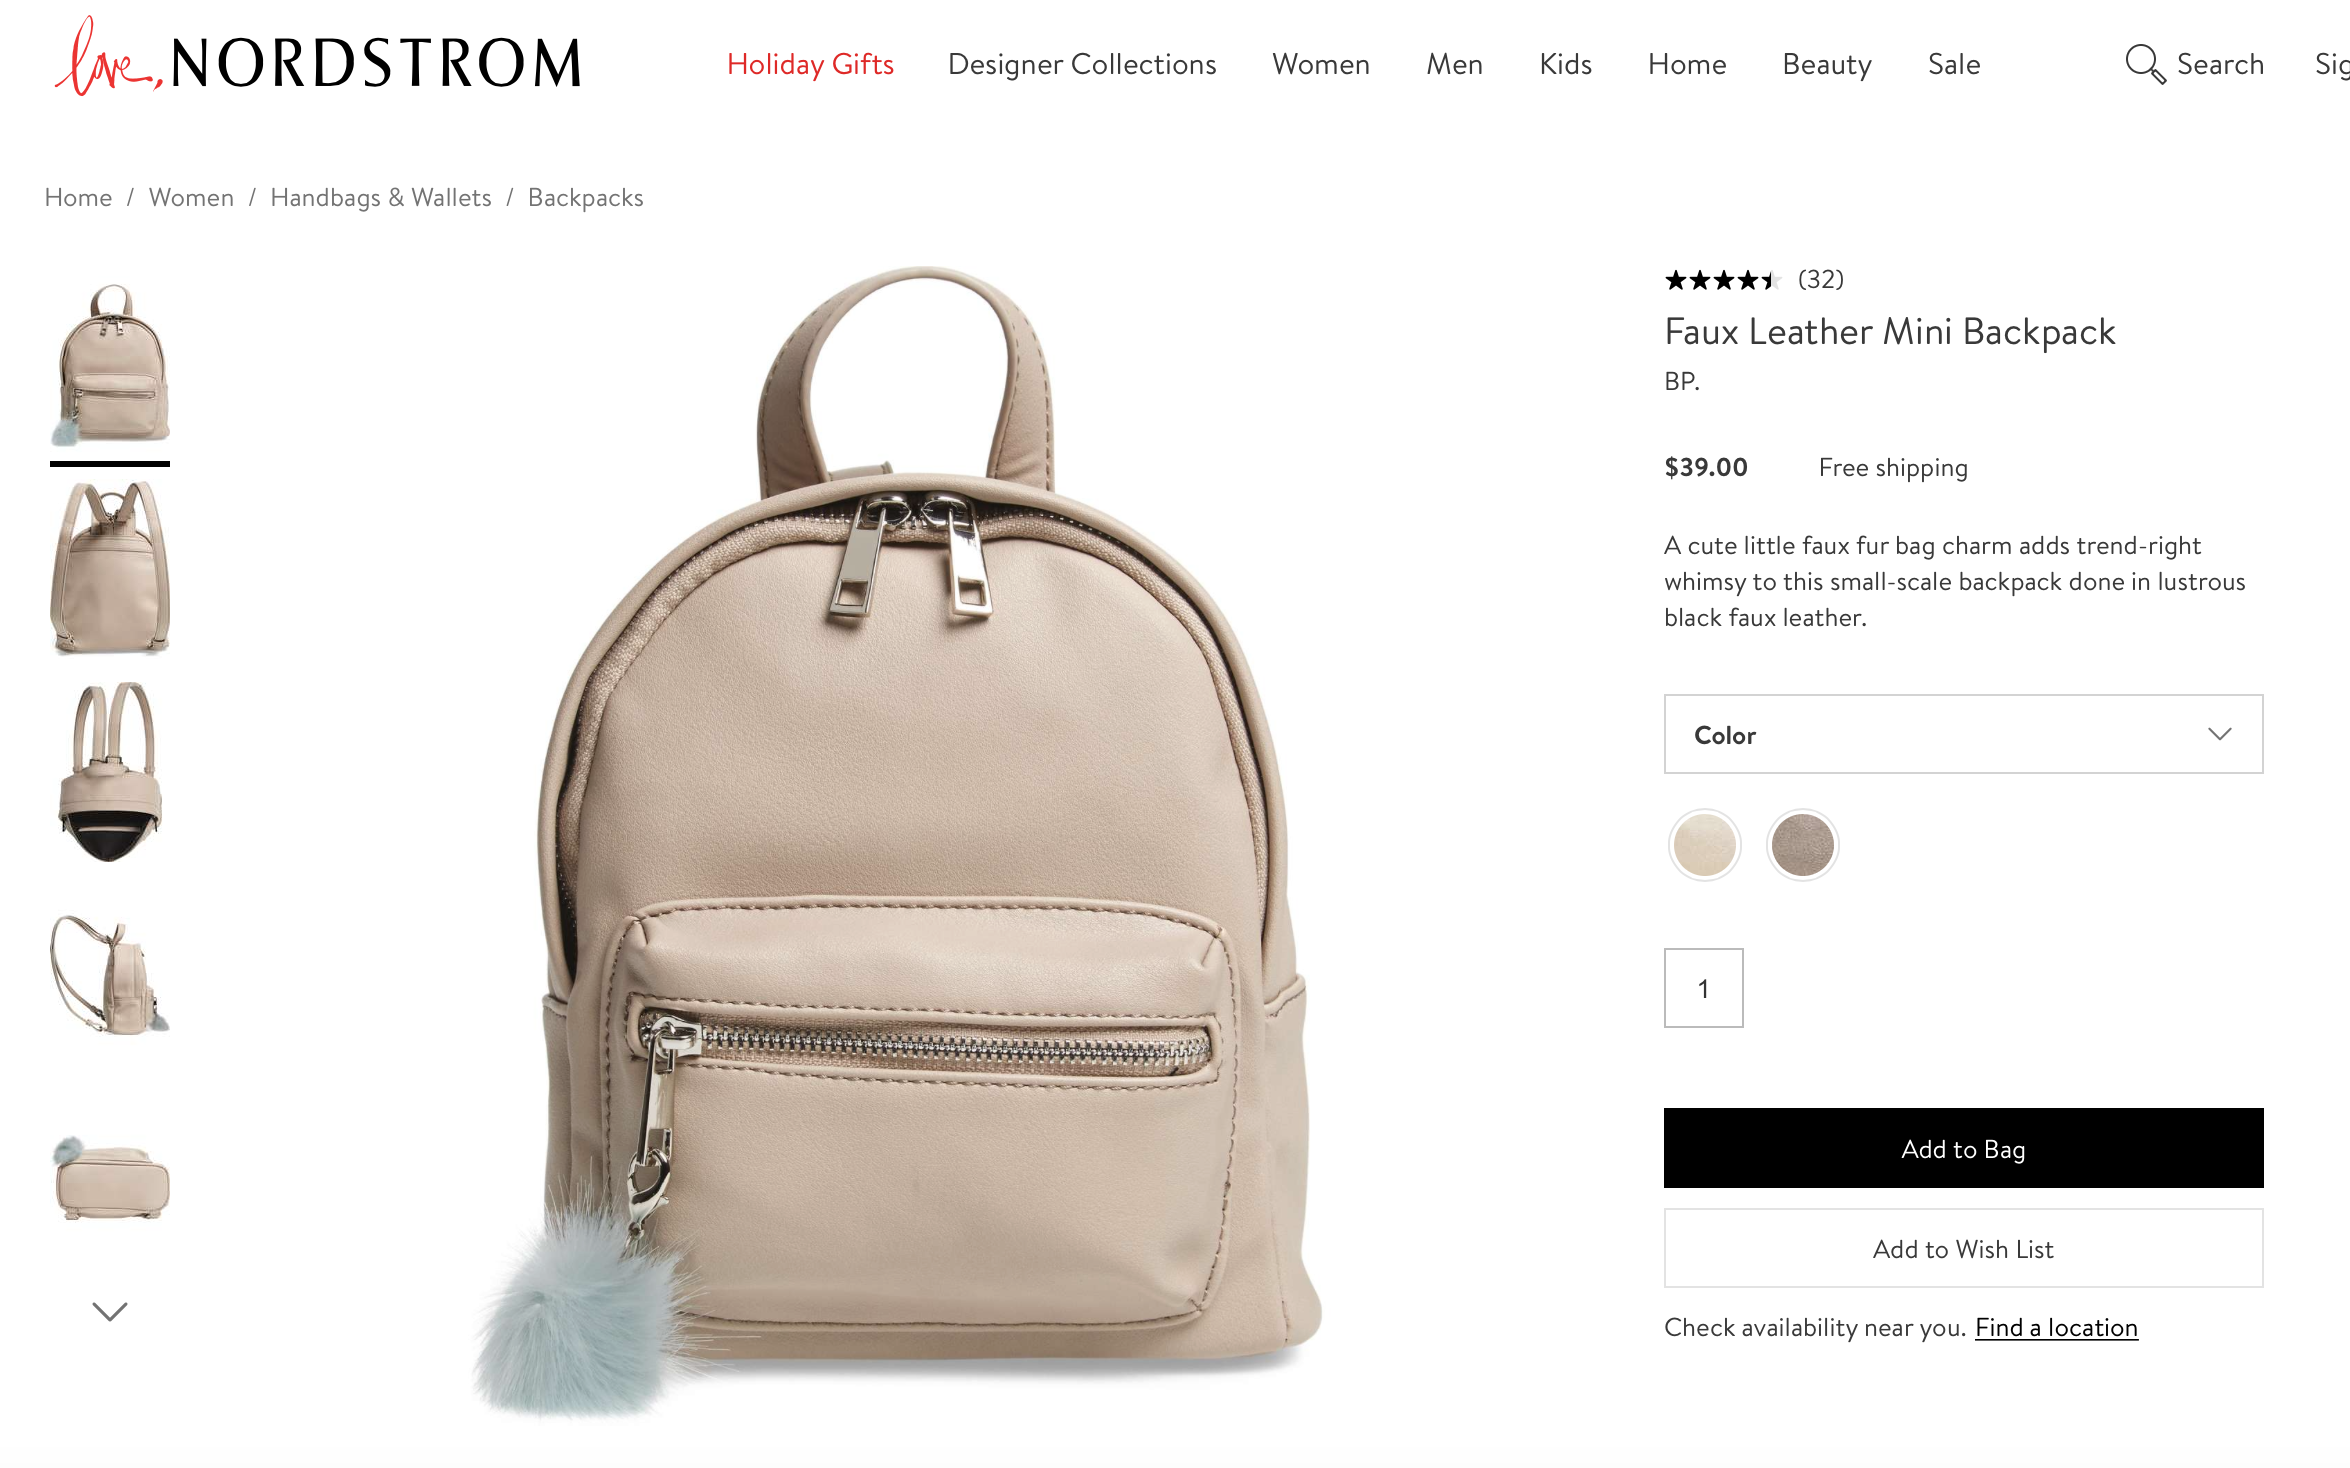 5a89a0df6136 Mini Backpack! Something like this i would love for italy! This one is from  nordstrom